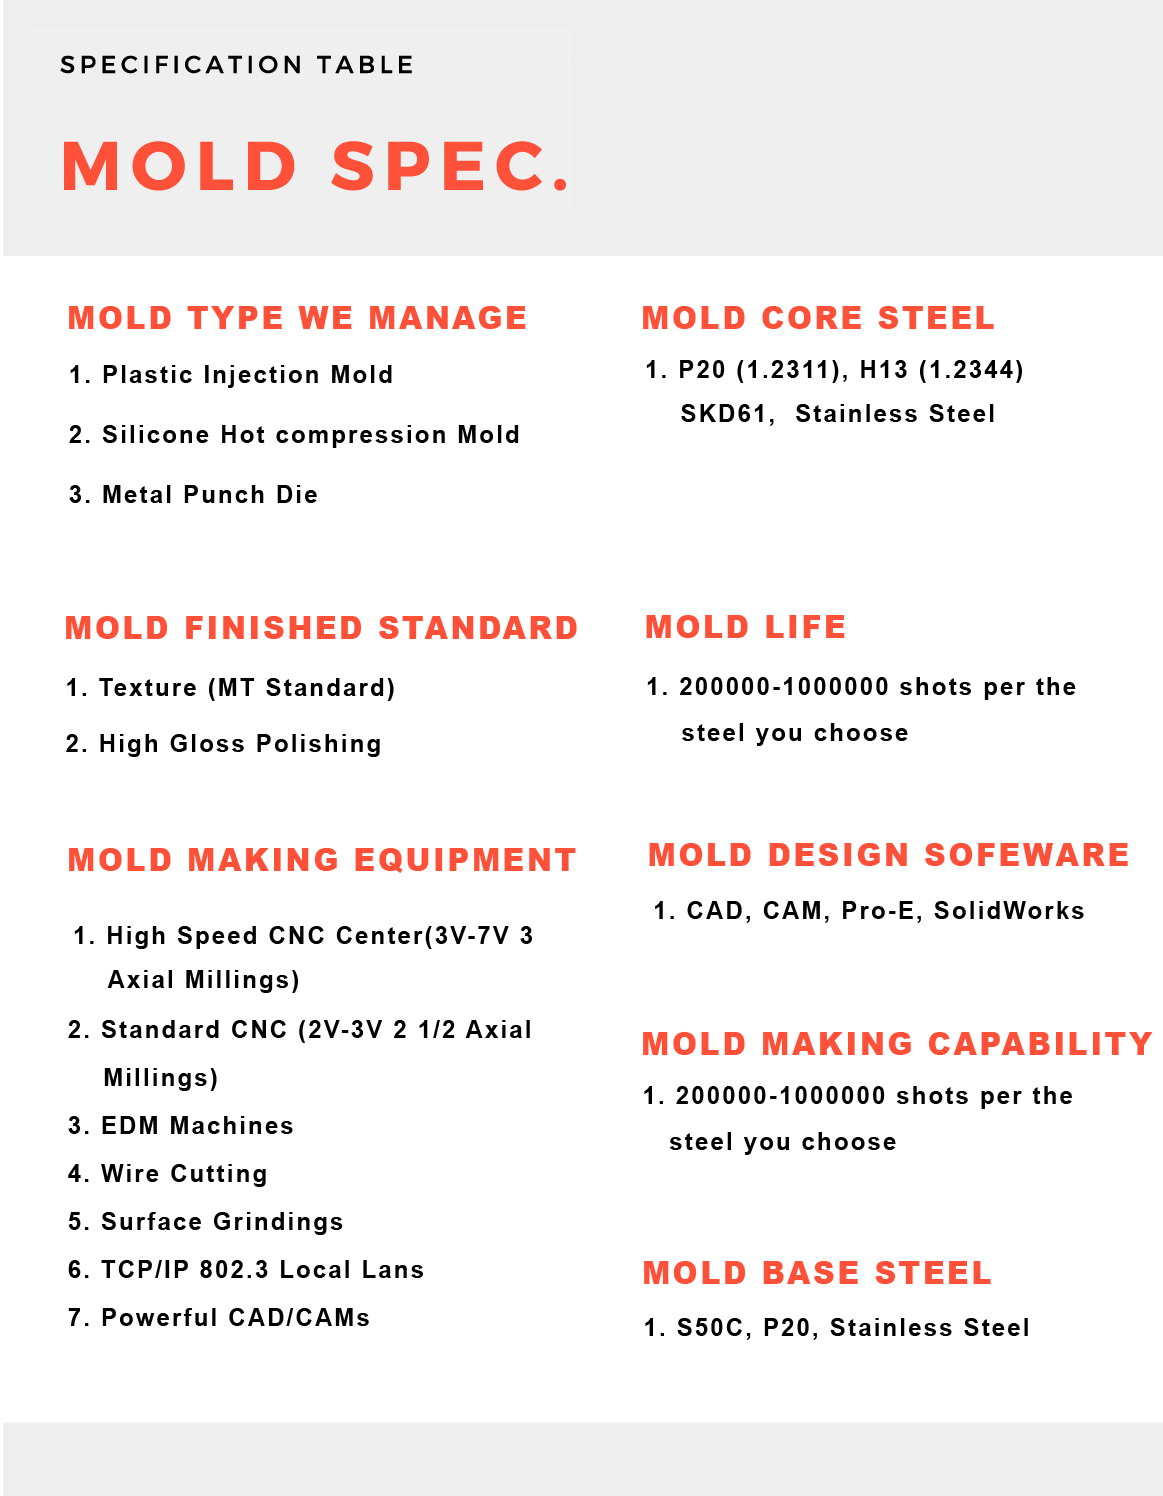 Mold specification